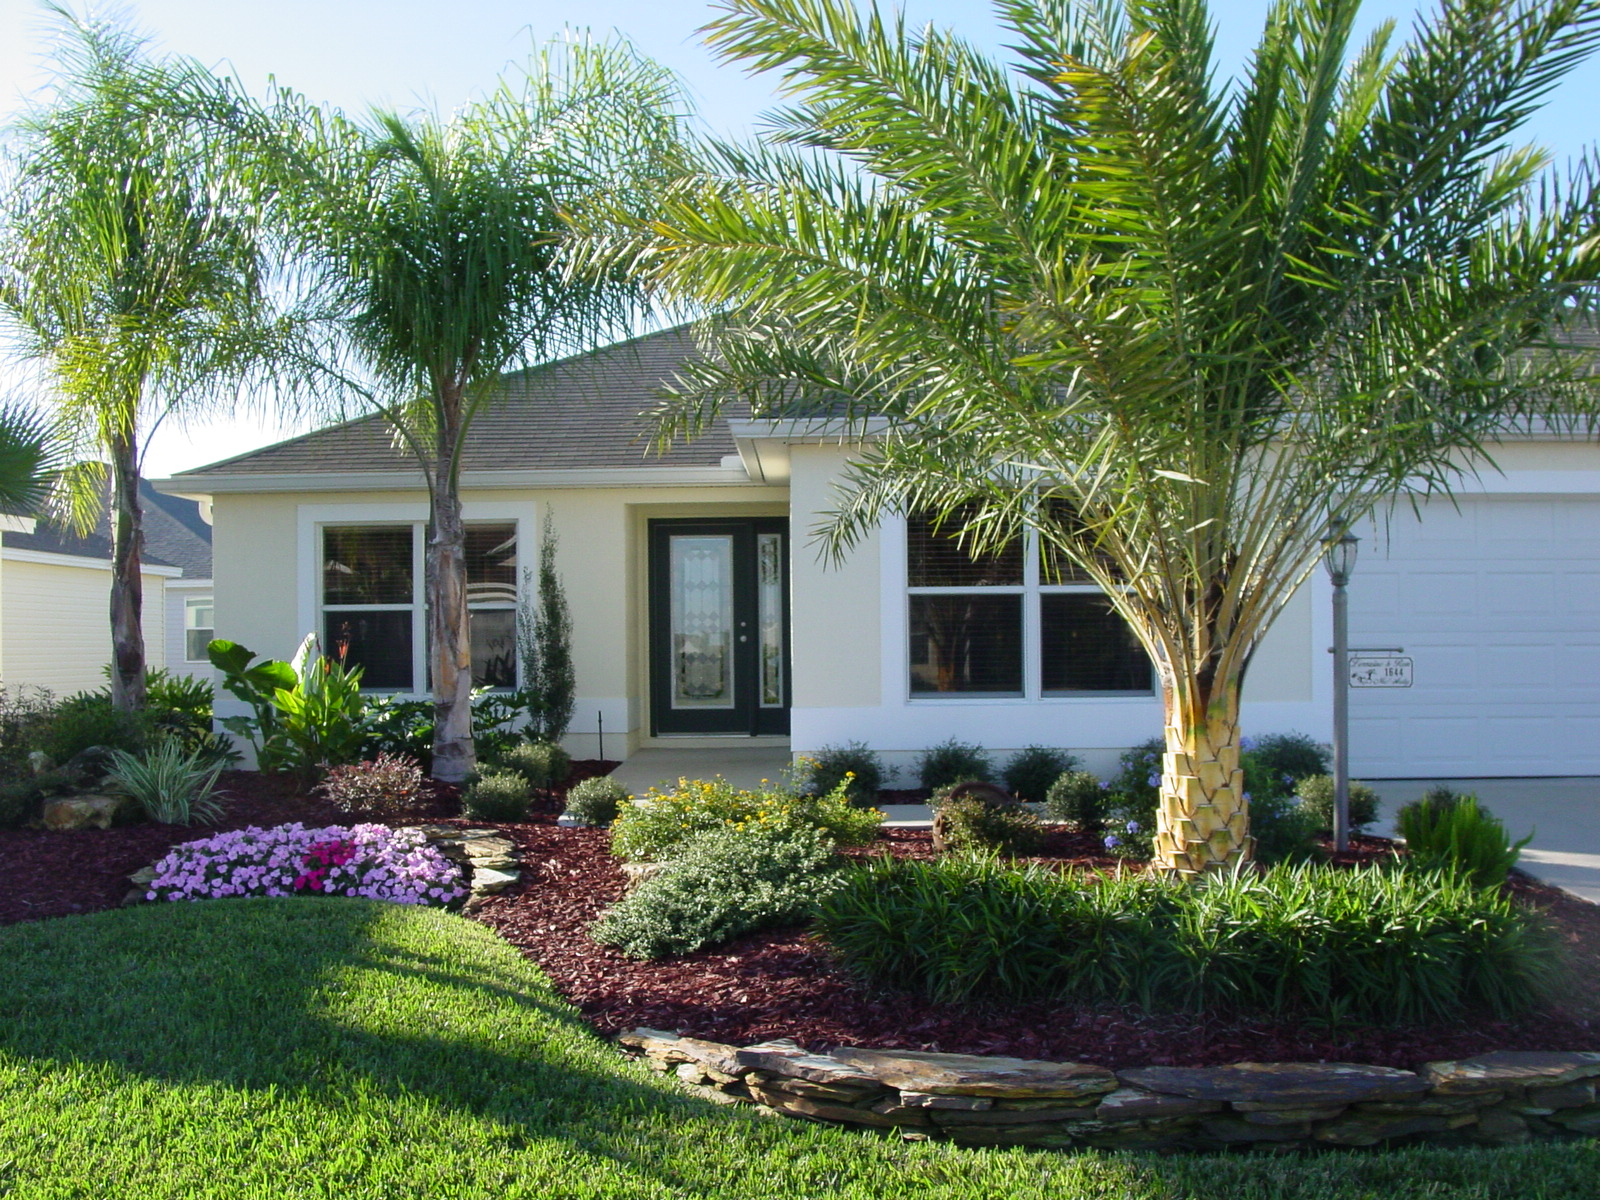 Florida garden landscape ideas photograph rons landscaping for Garden landscaping ideas